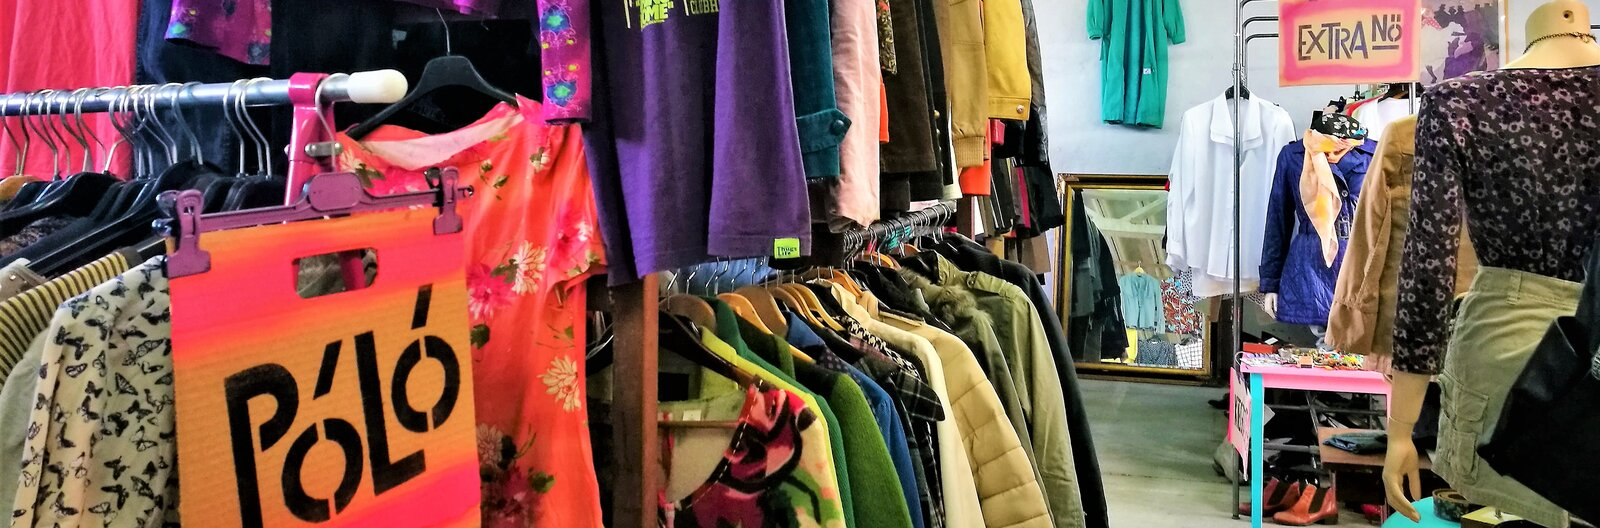 Corona spring clean: where to swap your old clothes for new